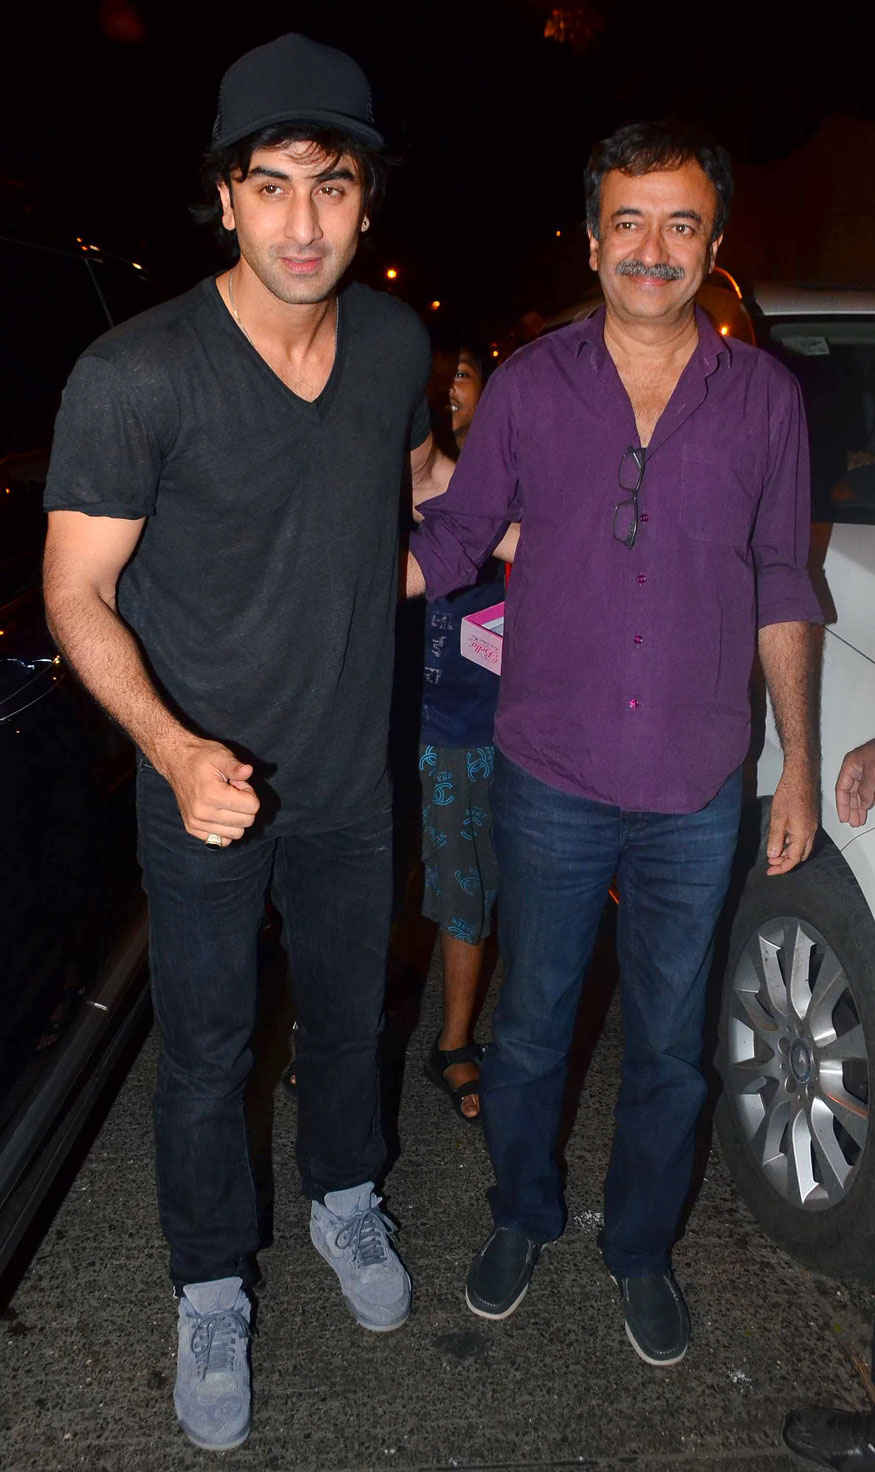 Ranbir Kapoor and Rajkumar Hirani Arrive at Birthday Party of Imtiaz Ali at The Korner House